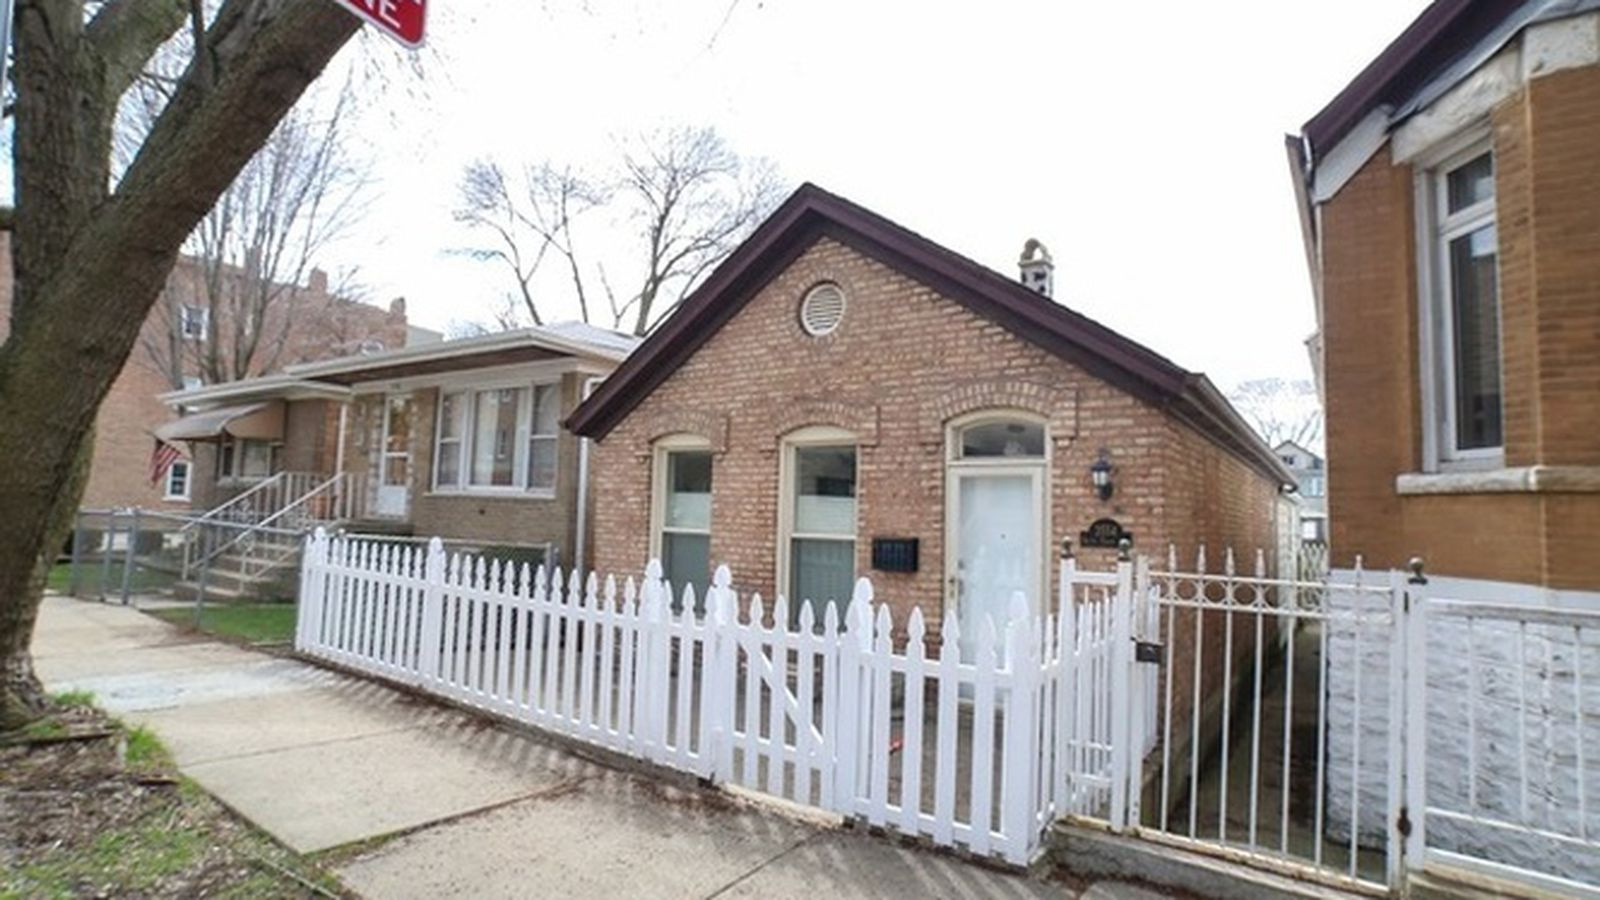 Get a rehabbed worker cottage in bridgeport for 268k for House in chicago for sale